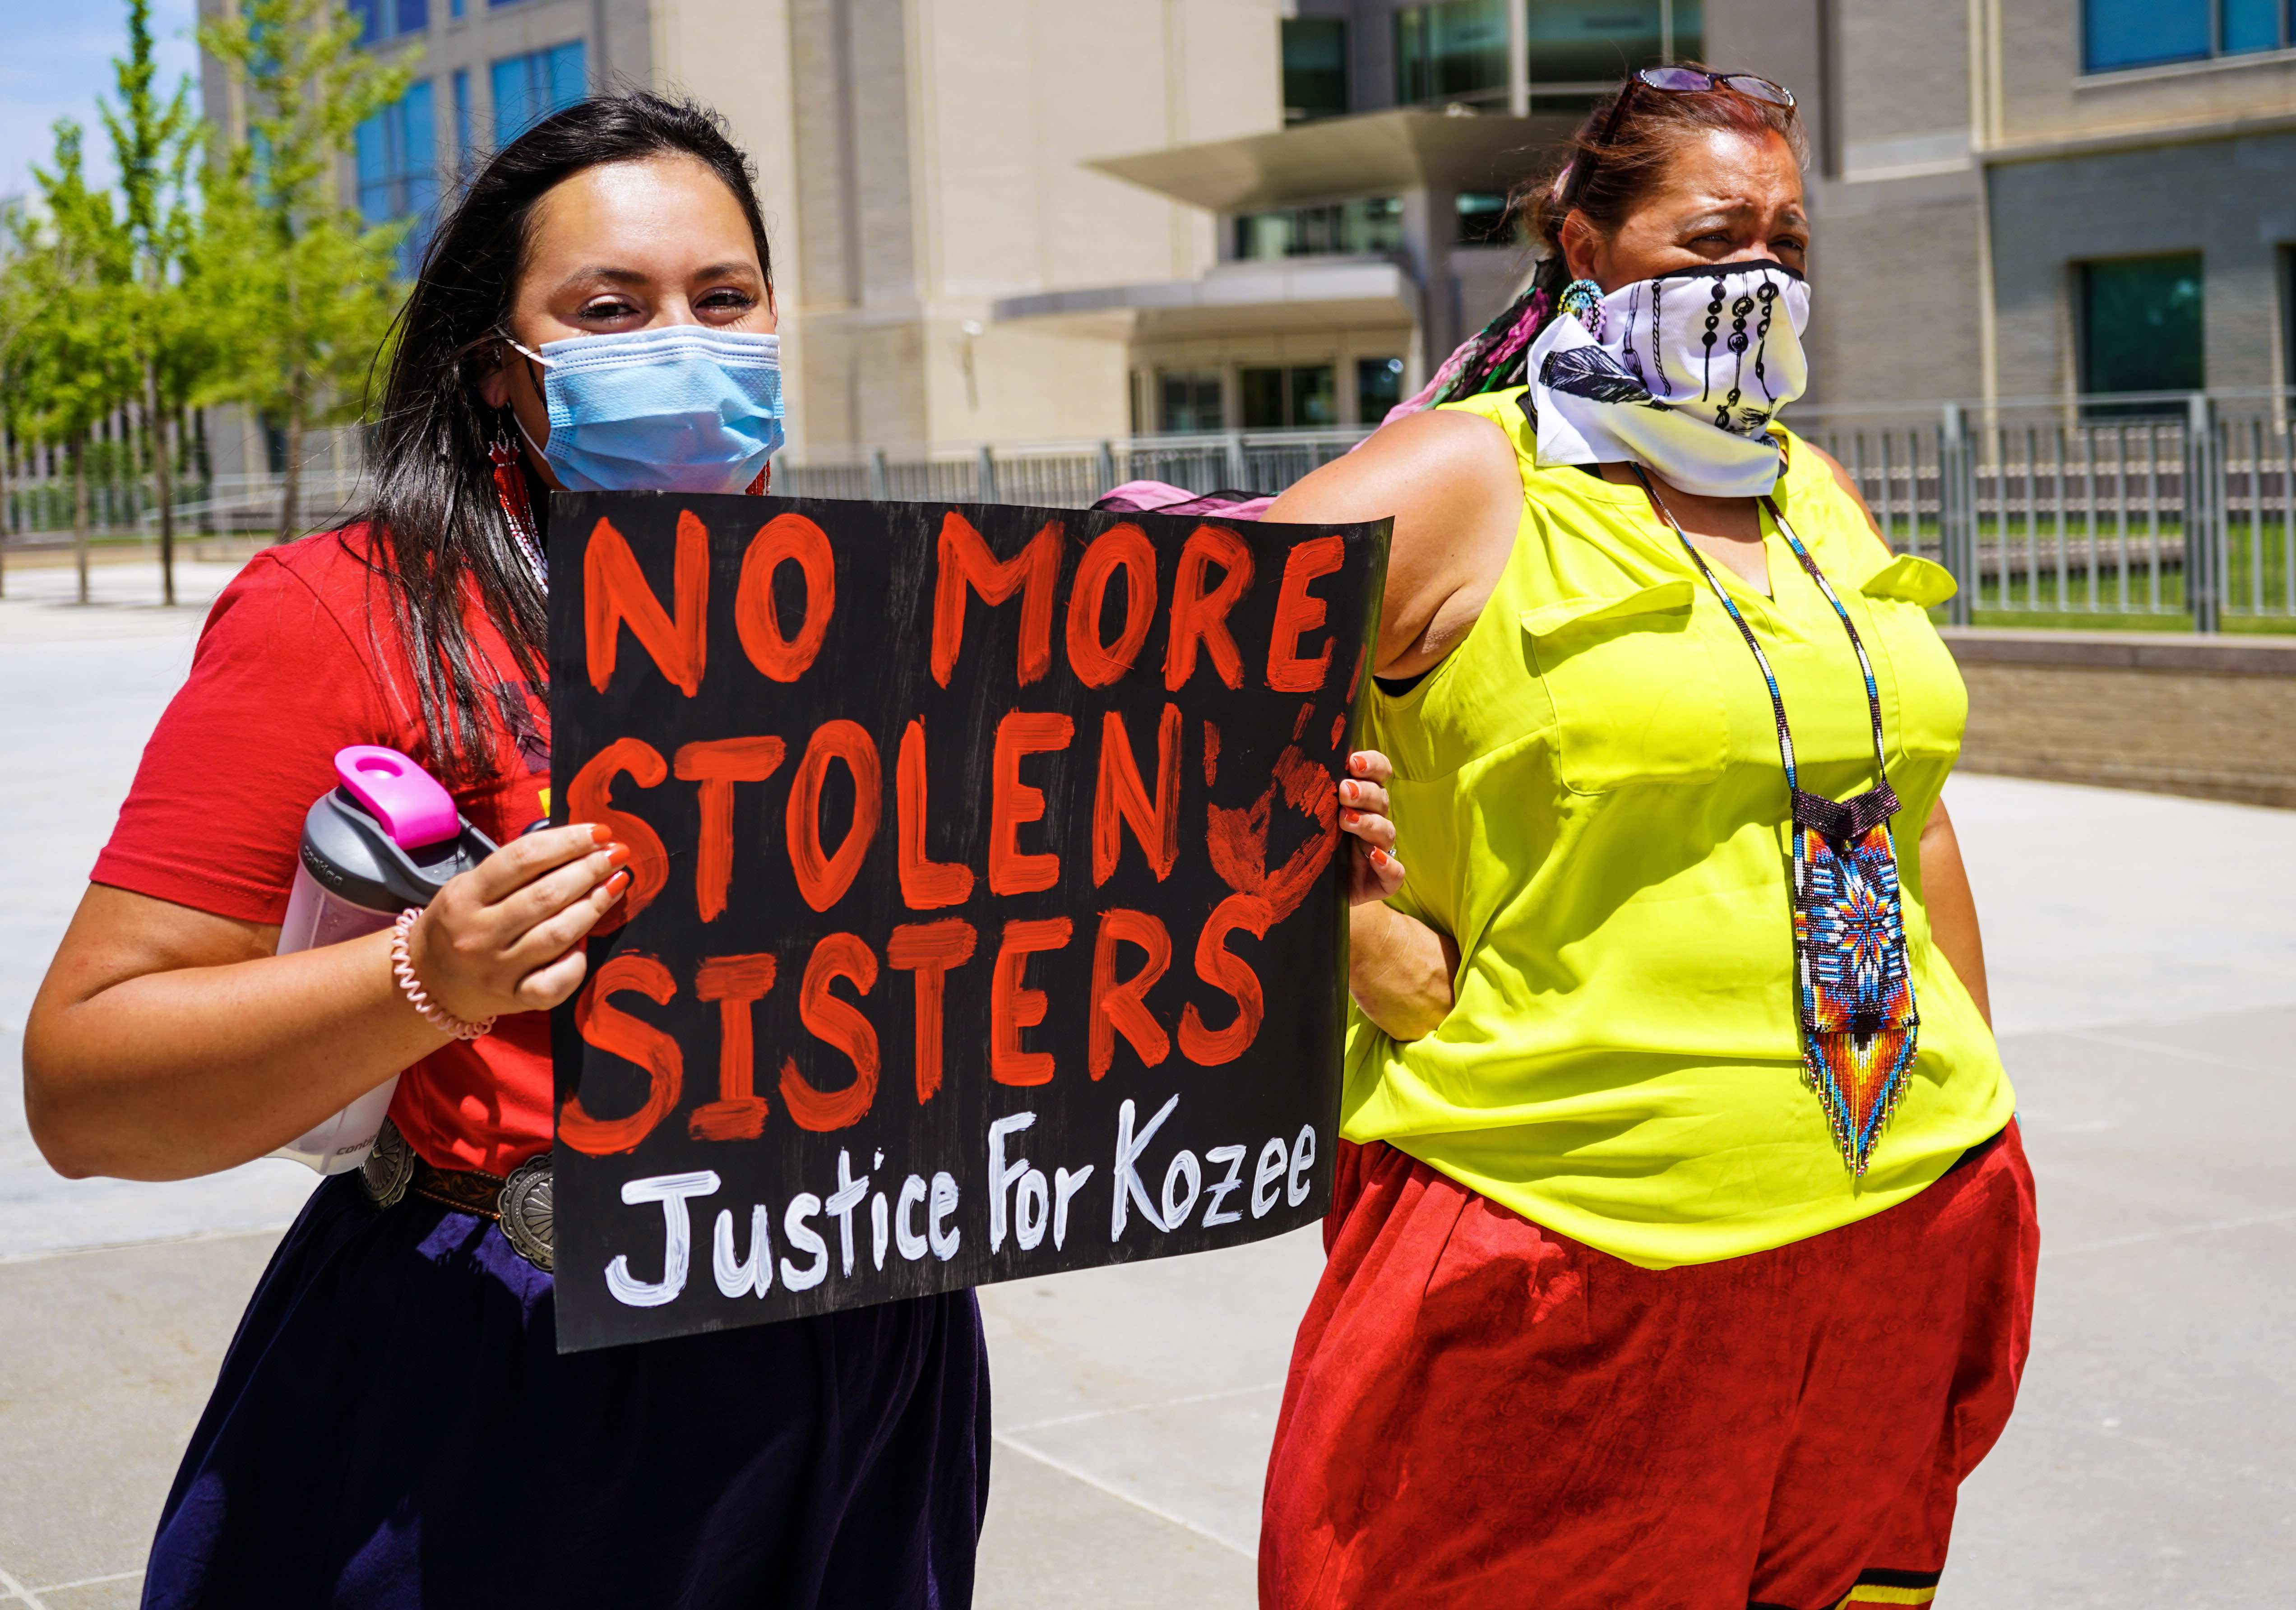 'Justice for Kozee!': Native women seek stronger charges for death of Kozee Decorah